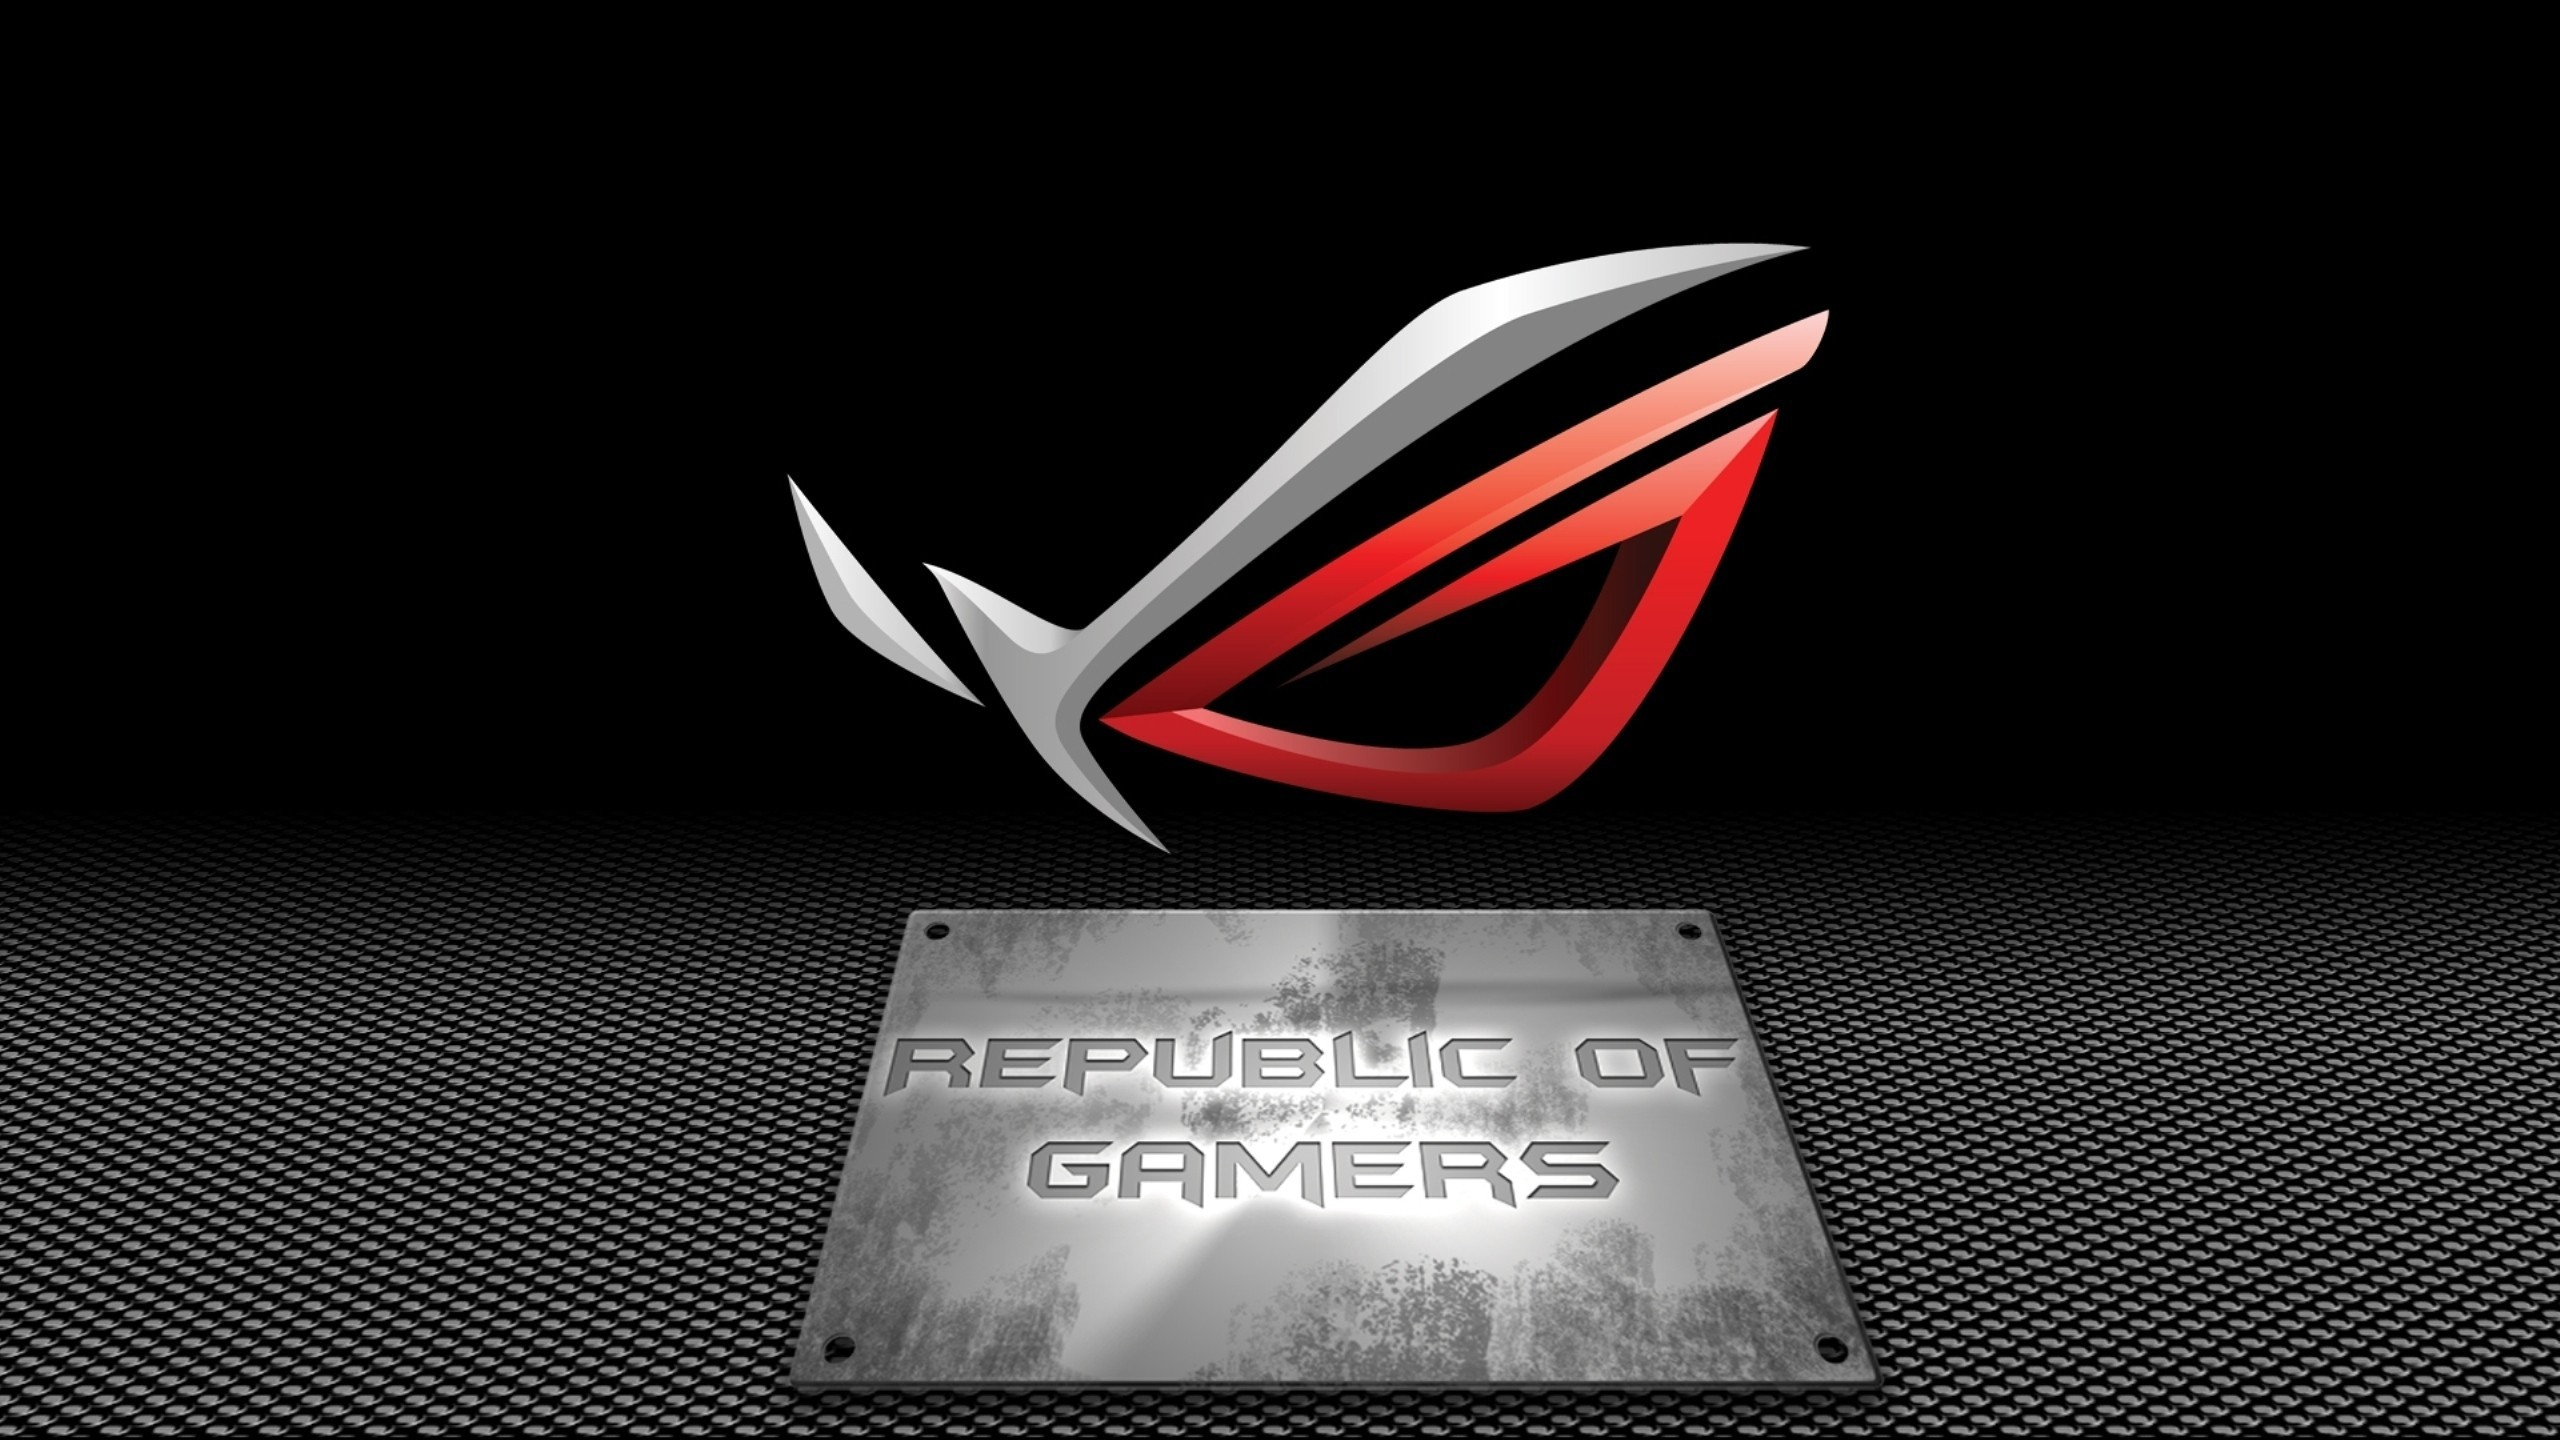 Asus rog republic of gamers wallpaper  AllWallpaper.in 685  PC  en